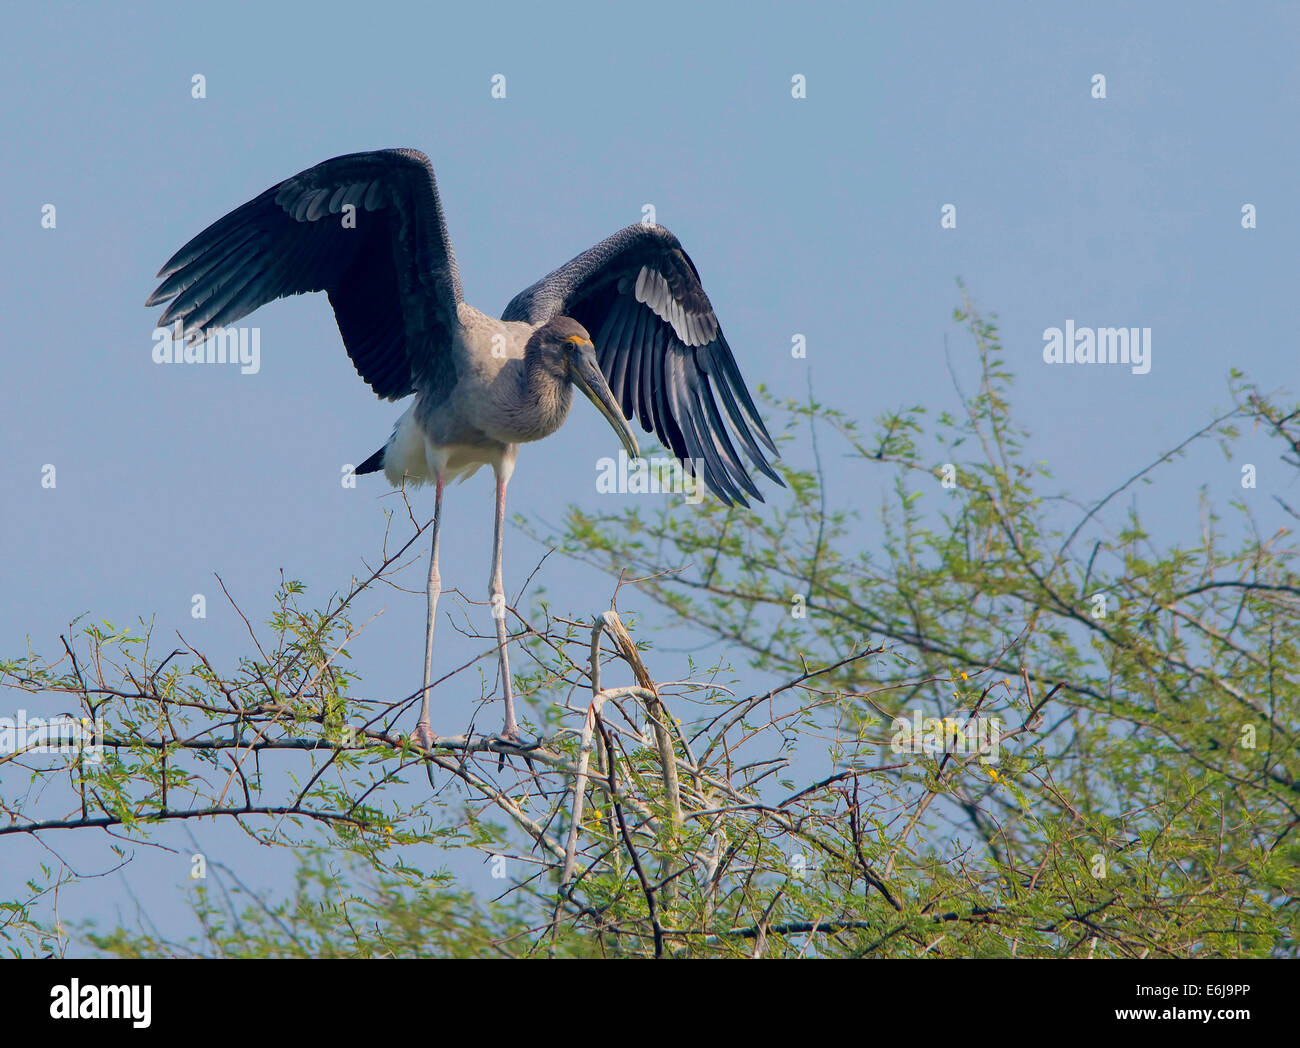 A juvenile painted stork with expanded wings on tree top - Stock Image